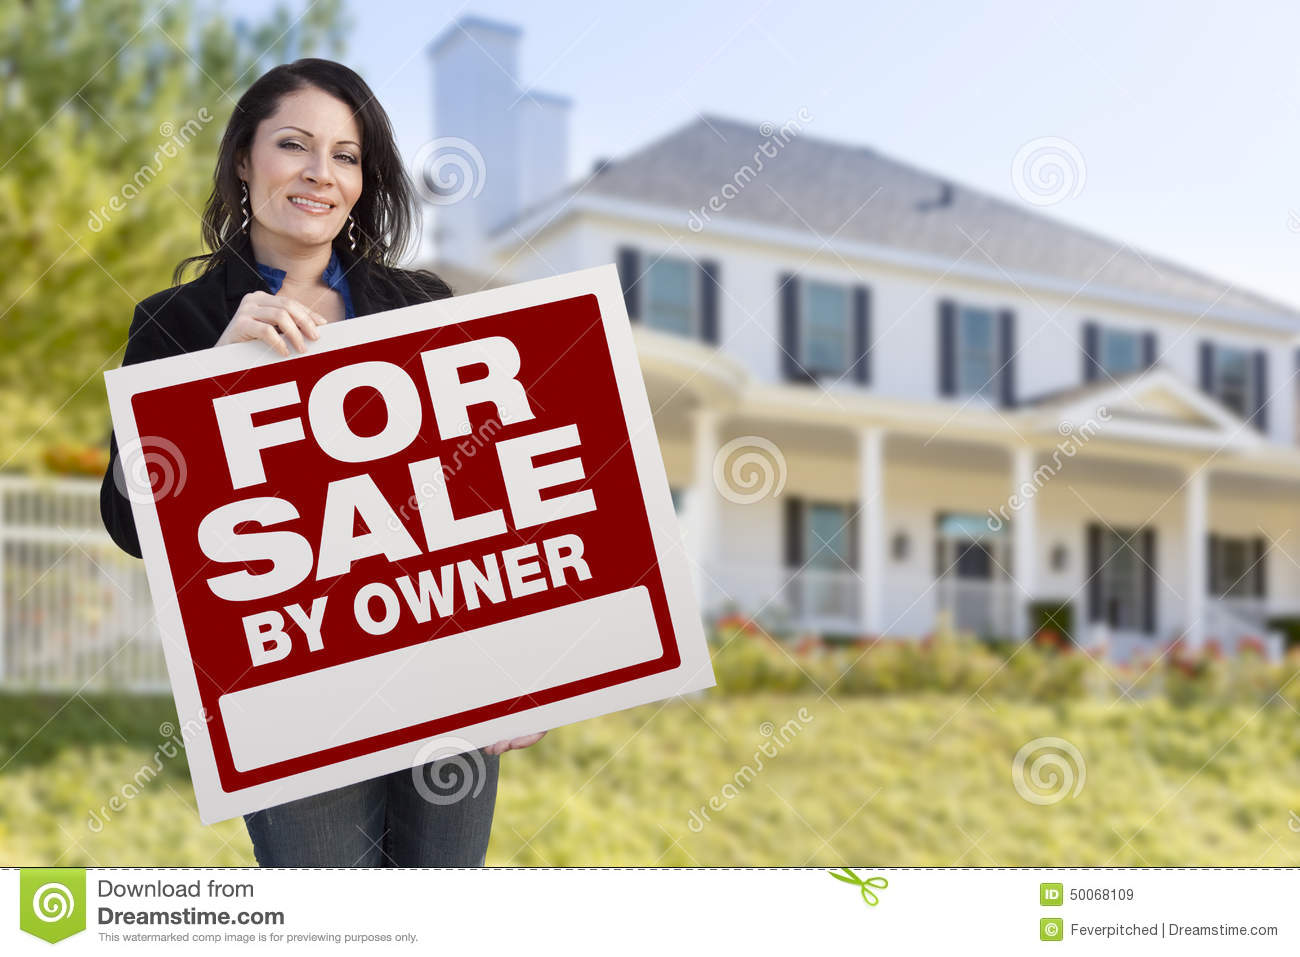 how to find houses for sale by owner